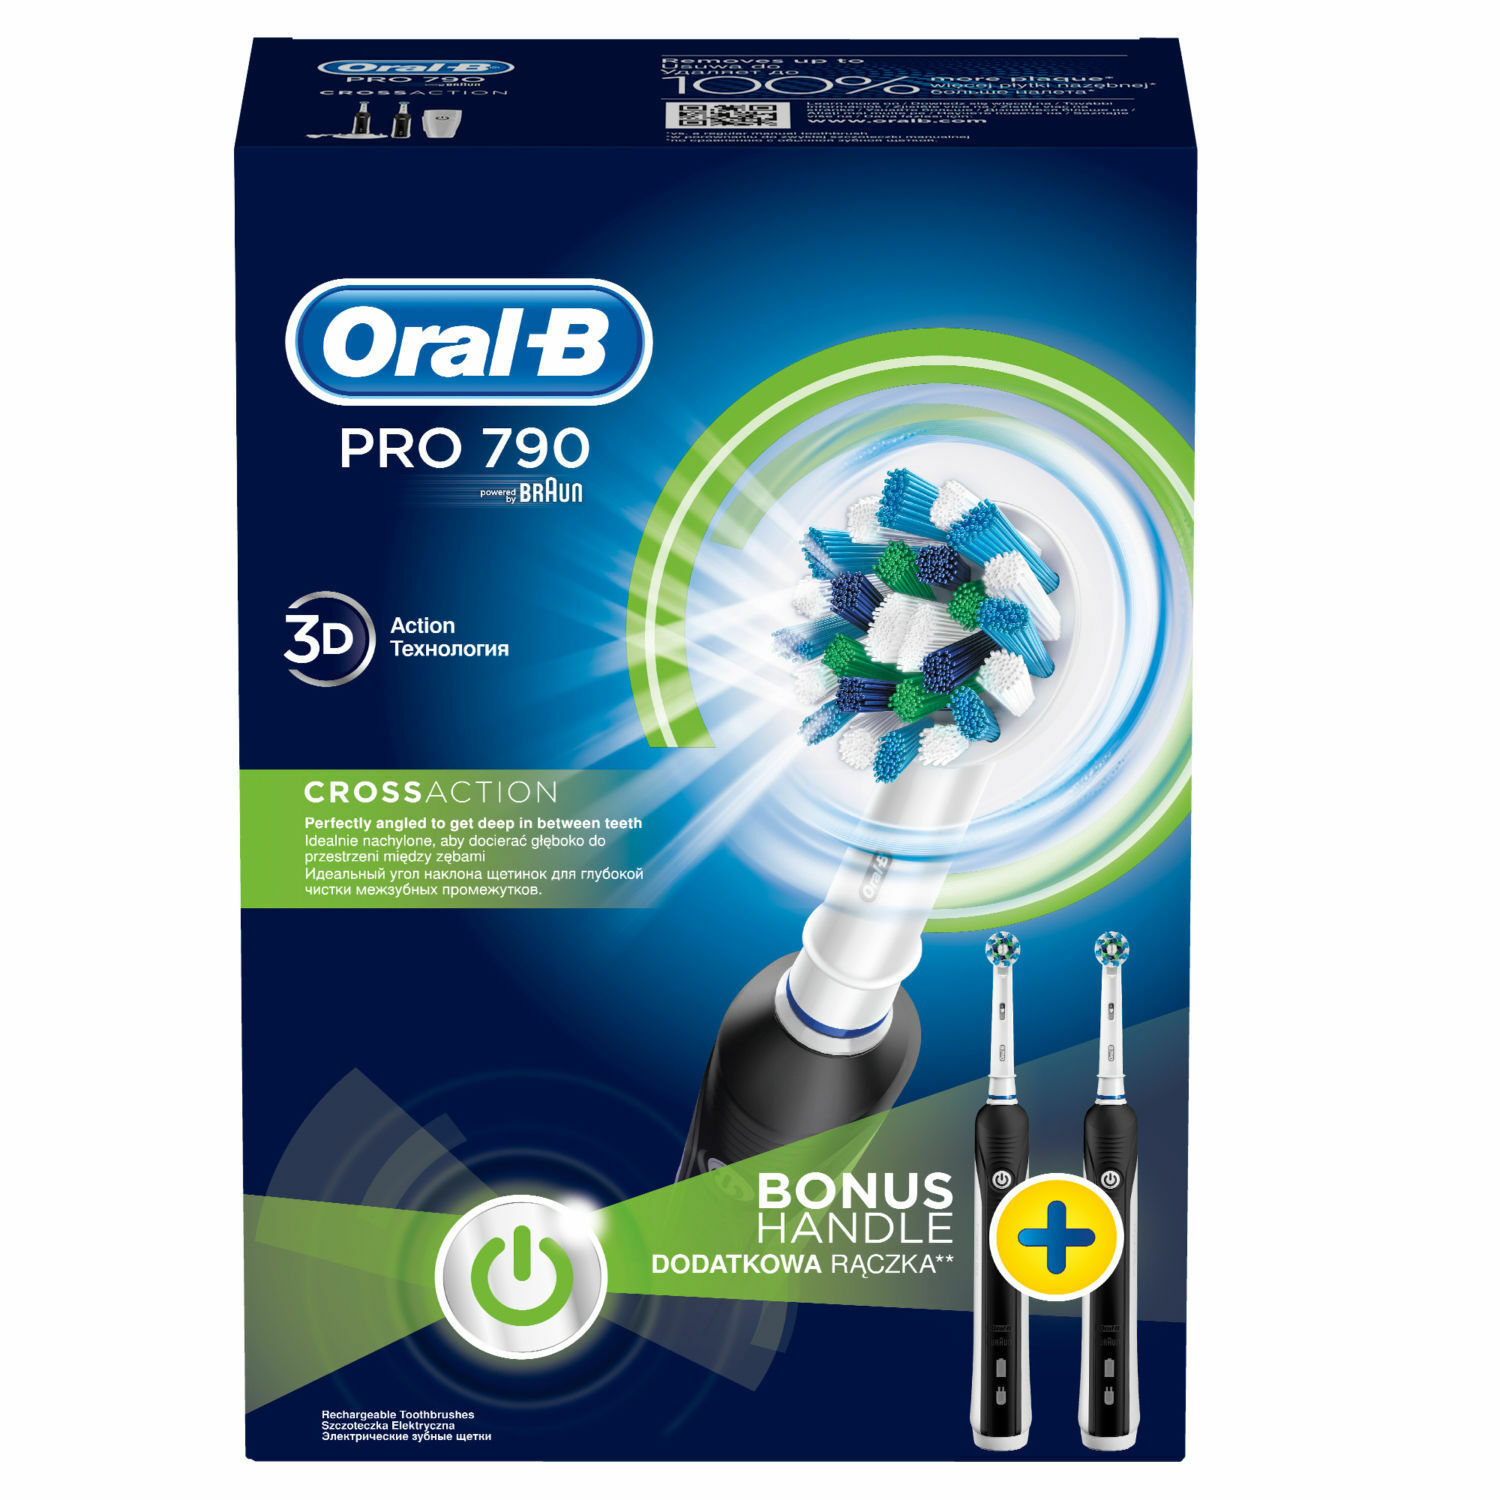 ORAL-B Pro 790 Crossaction Toothbrush - Duo Advantage Package - 2 Handles SALES image